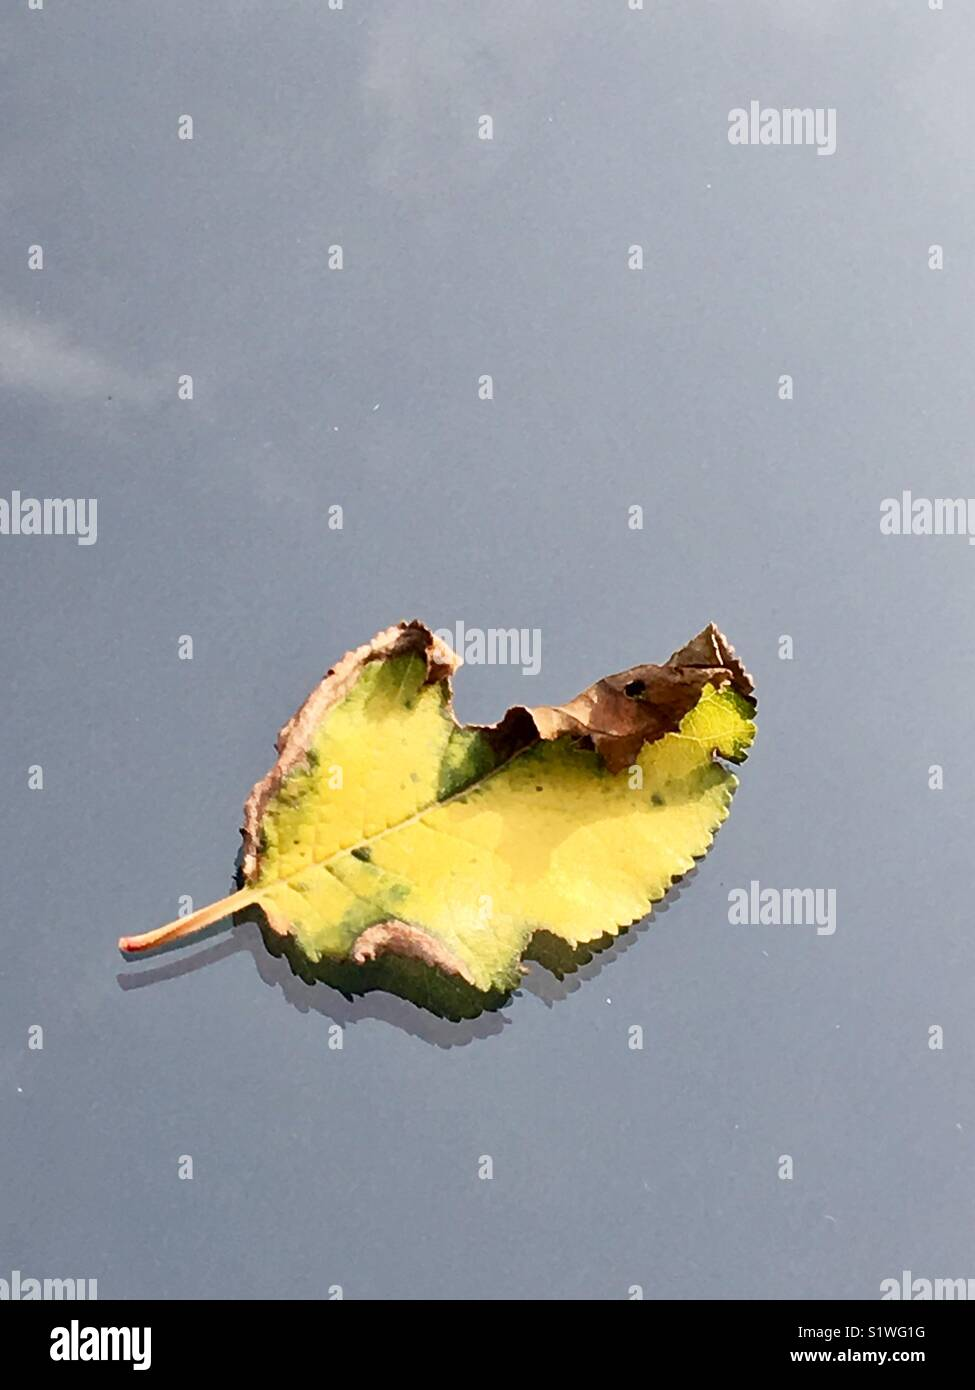 Yellow leaf on glass in autumn - Stock Image